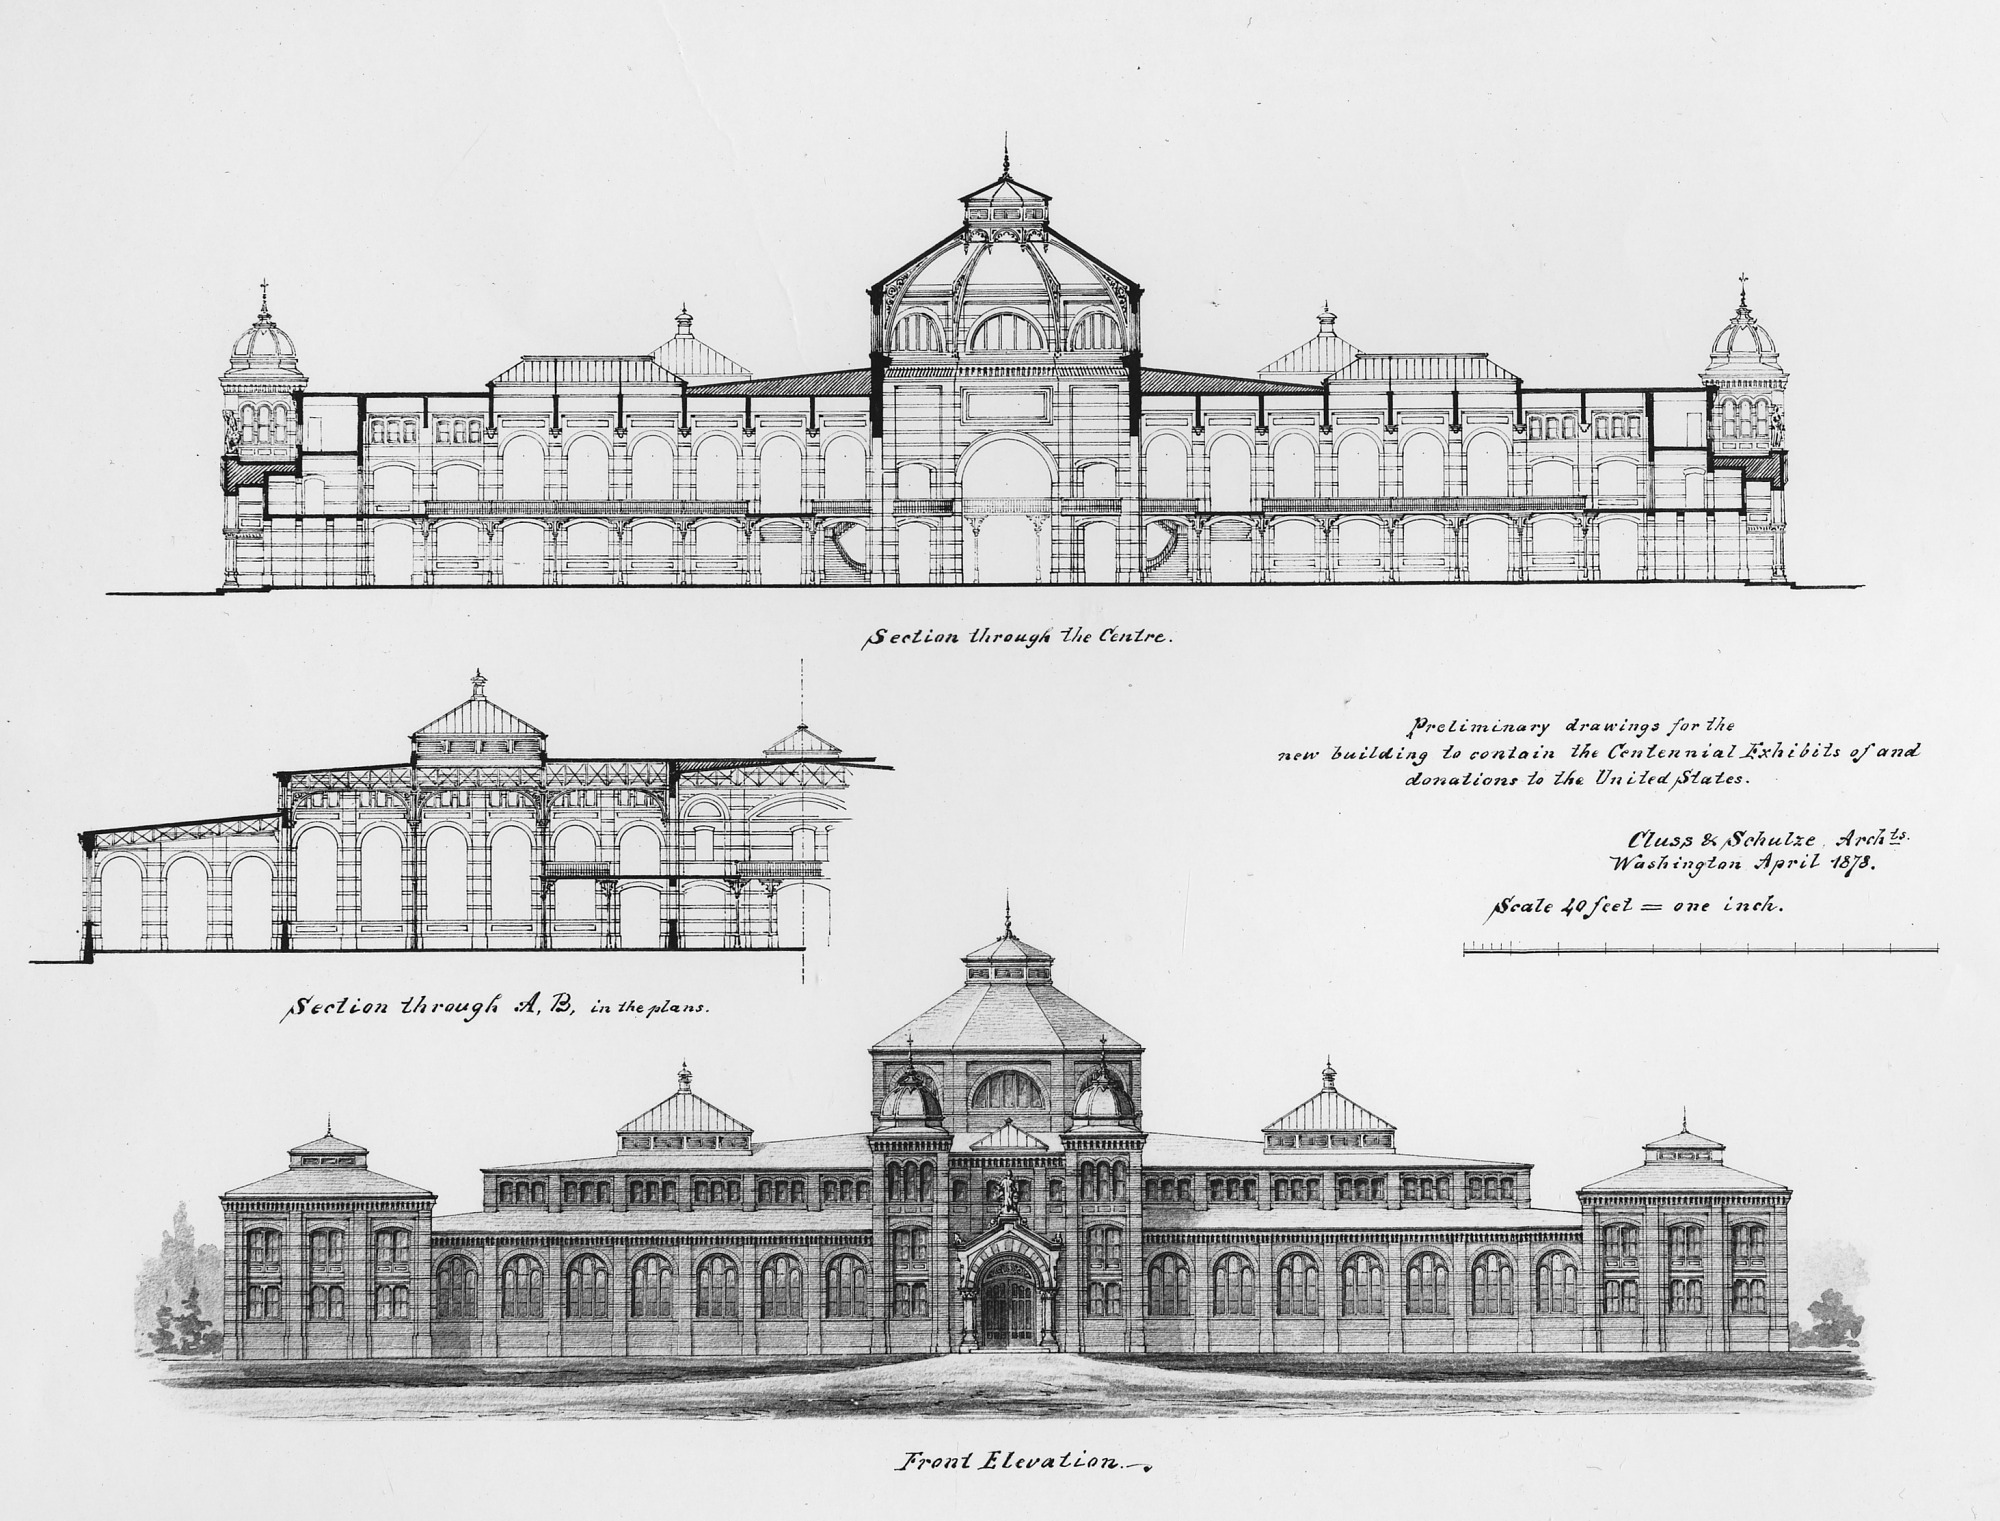 Plans for the United States National Museum